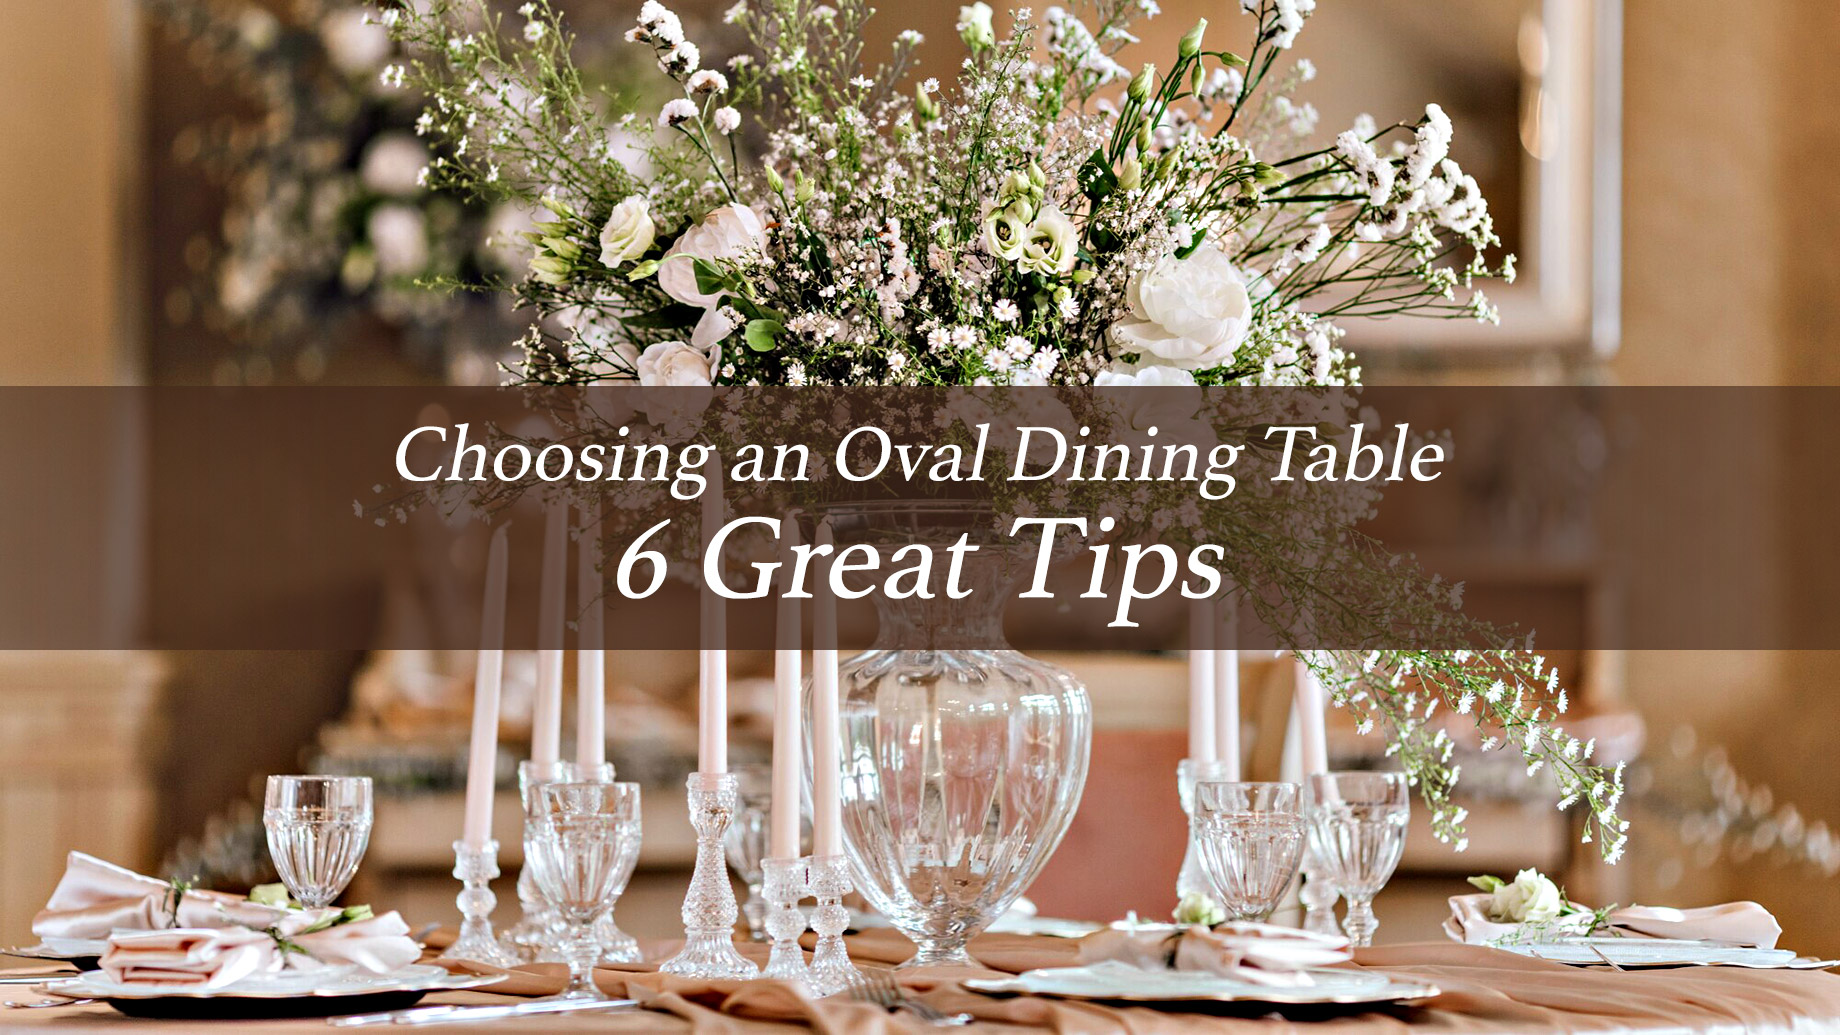 Choosing an Oval Dining Table - 6 Great Tips